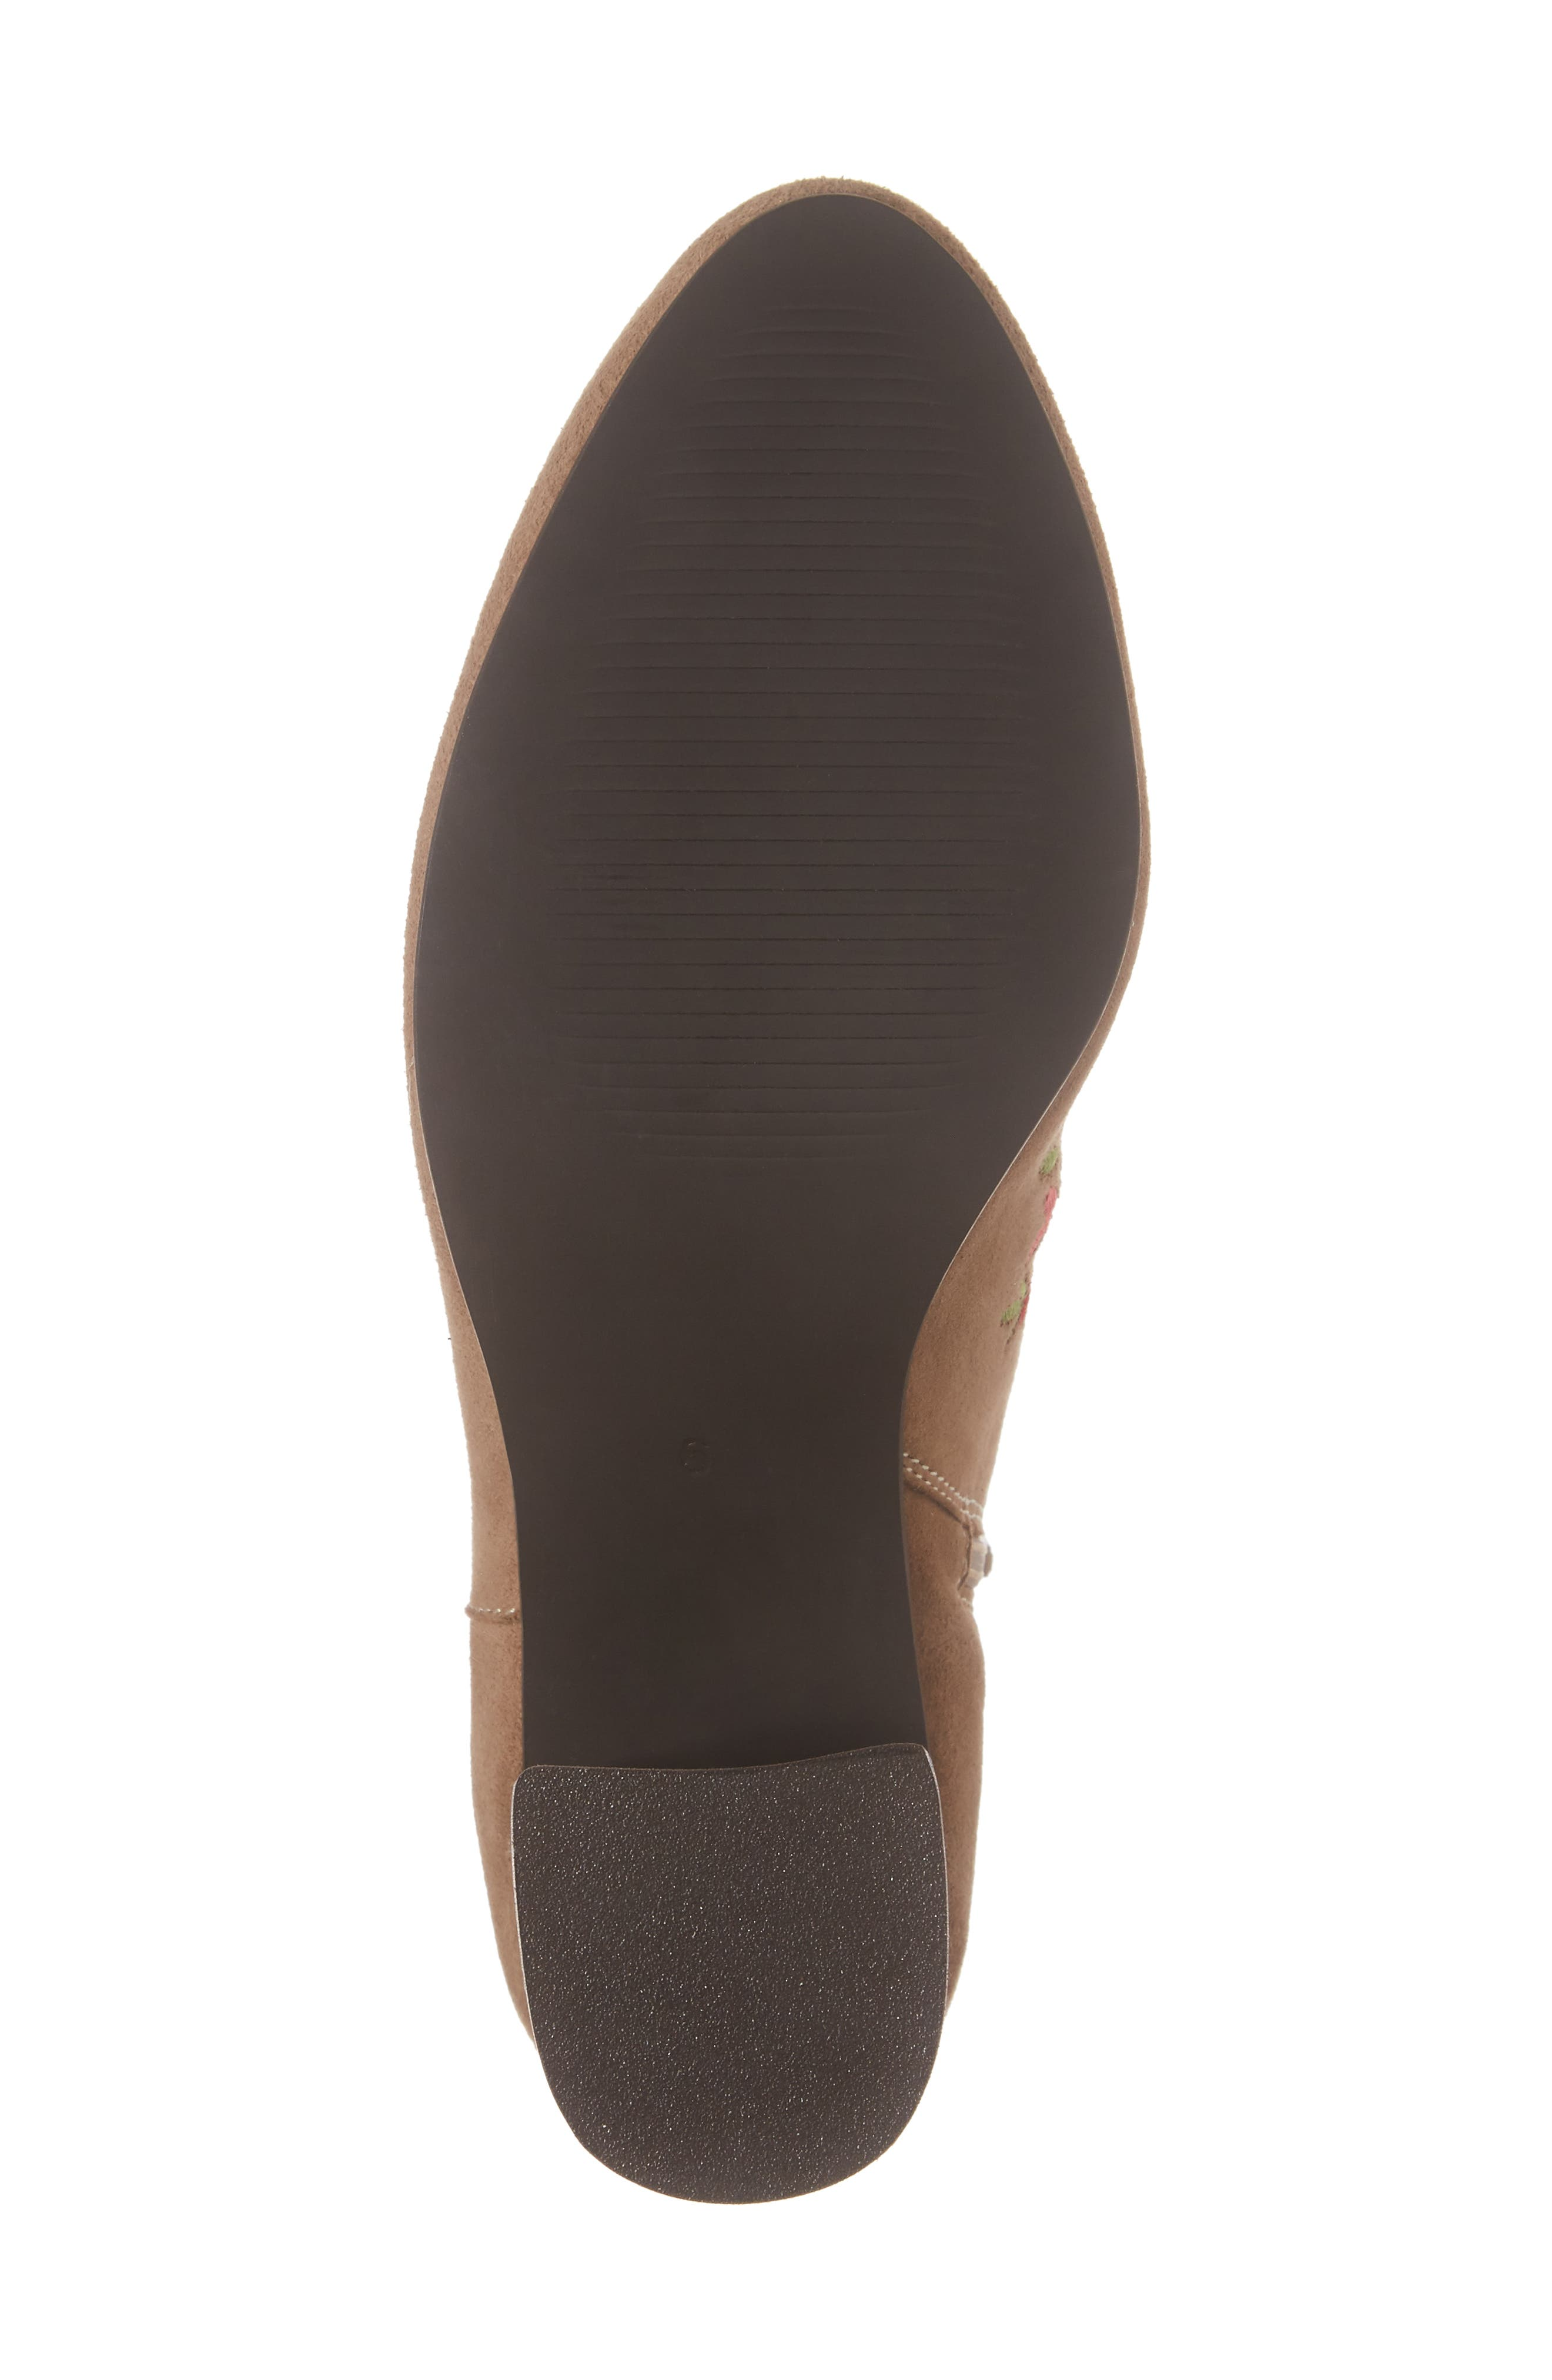 Veronaa Embroidered Bootie,                             Alternate thumbnail 6, color,                             Tan Suede